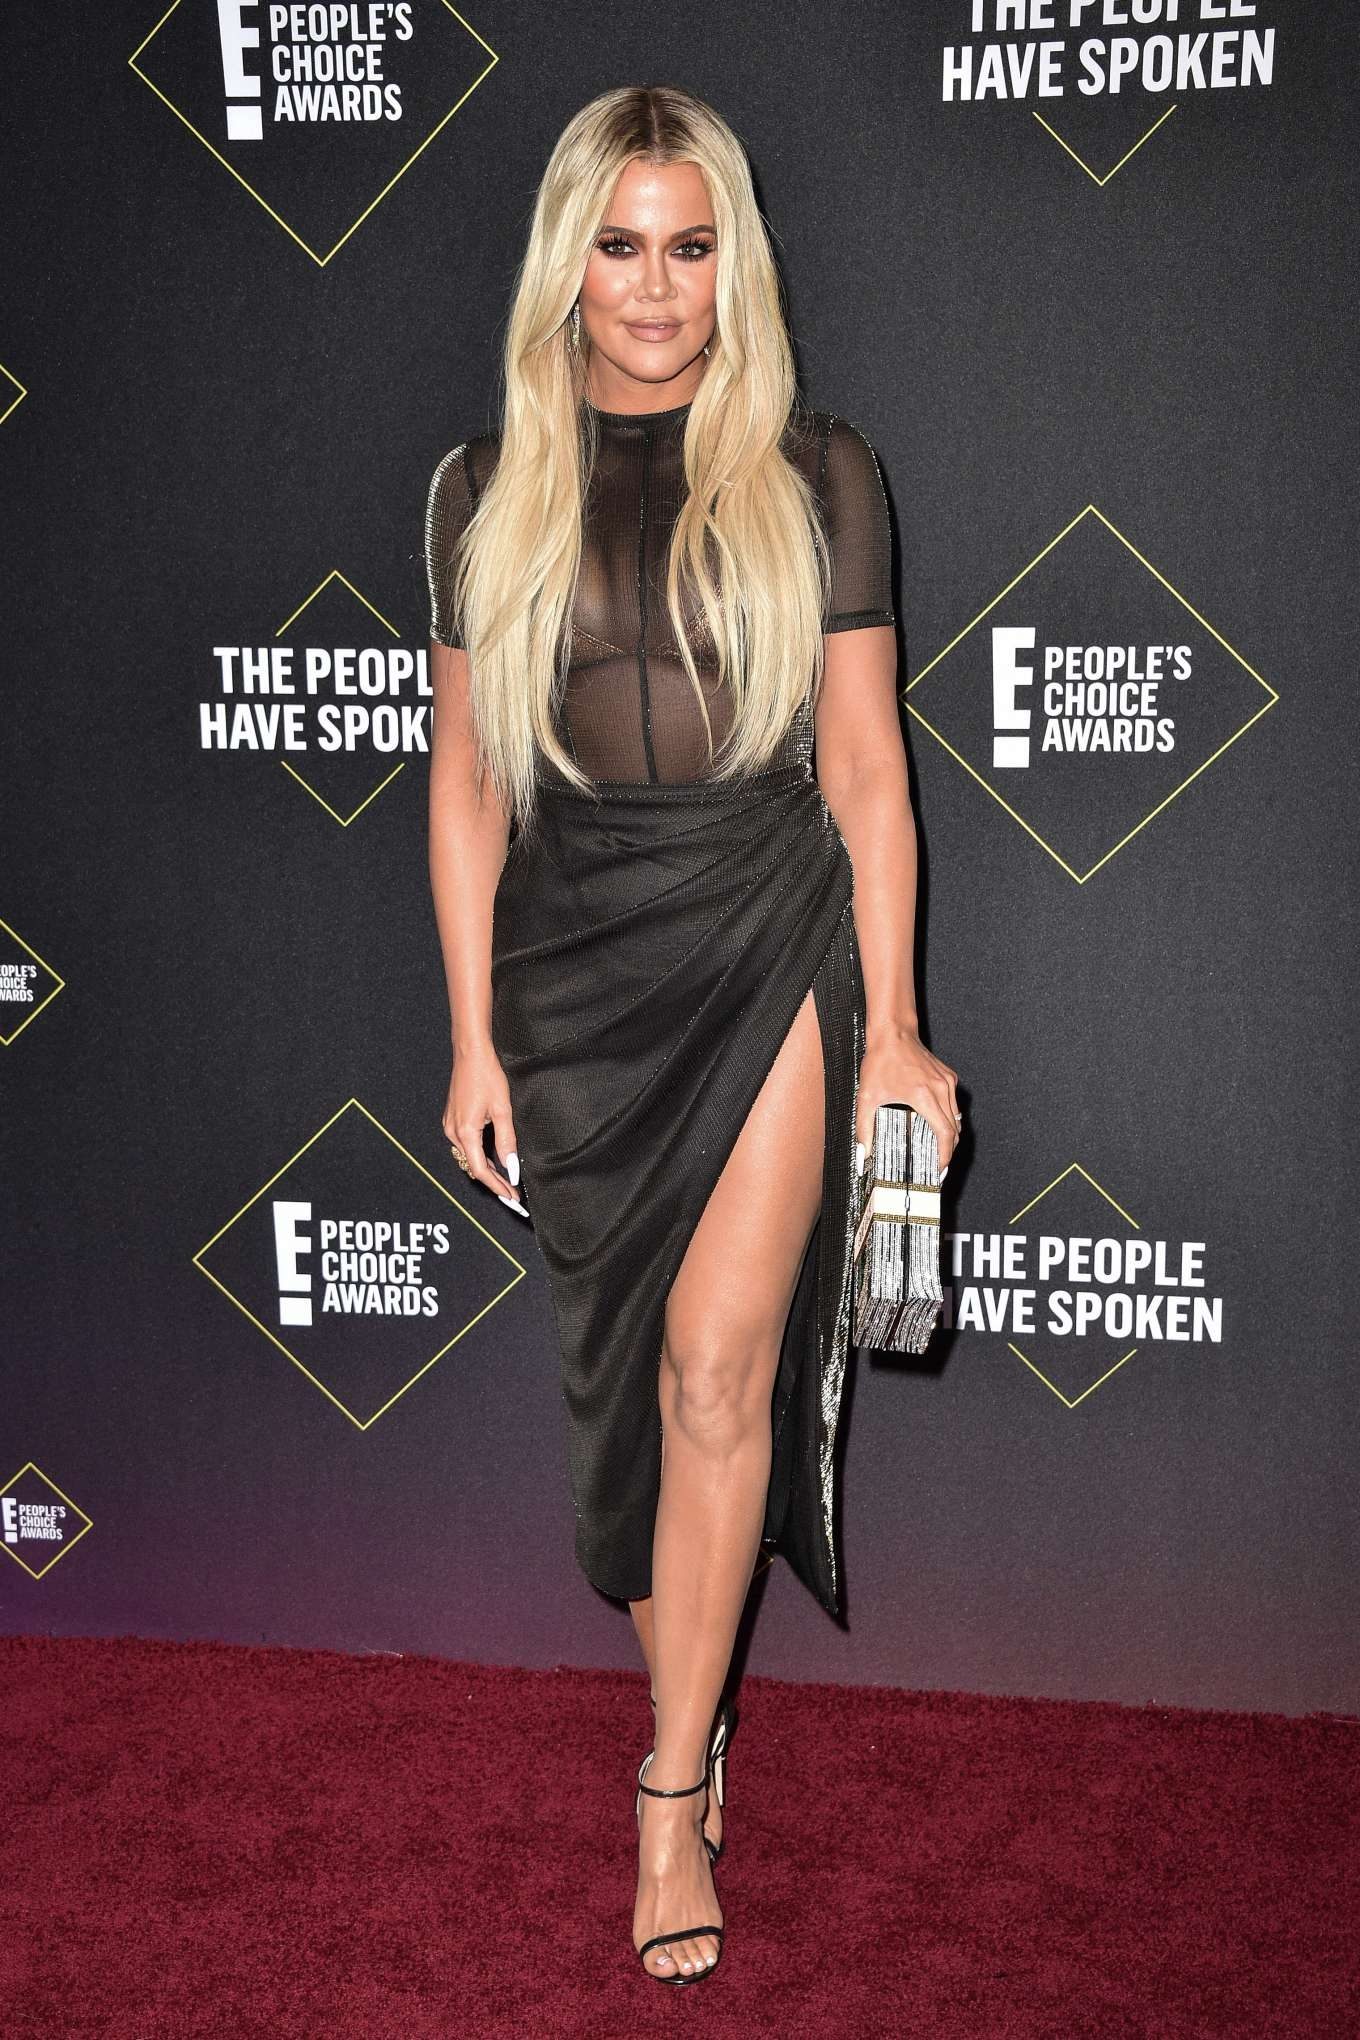 Khloe Kardashian donning a Sheer black tee with a sheer fabric, short sleeves, striped and a crew neck